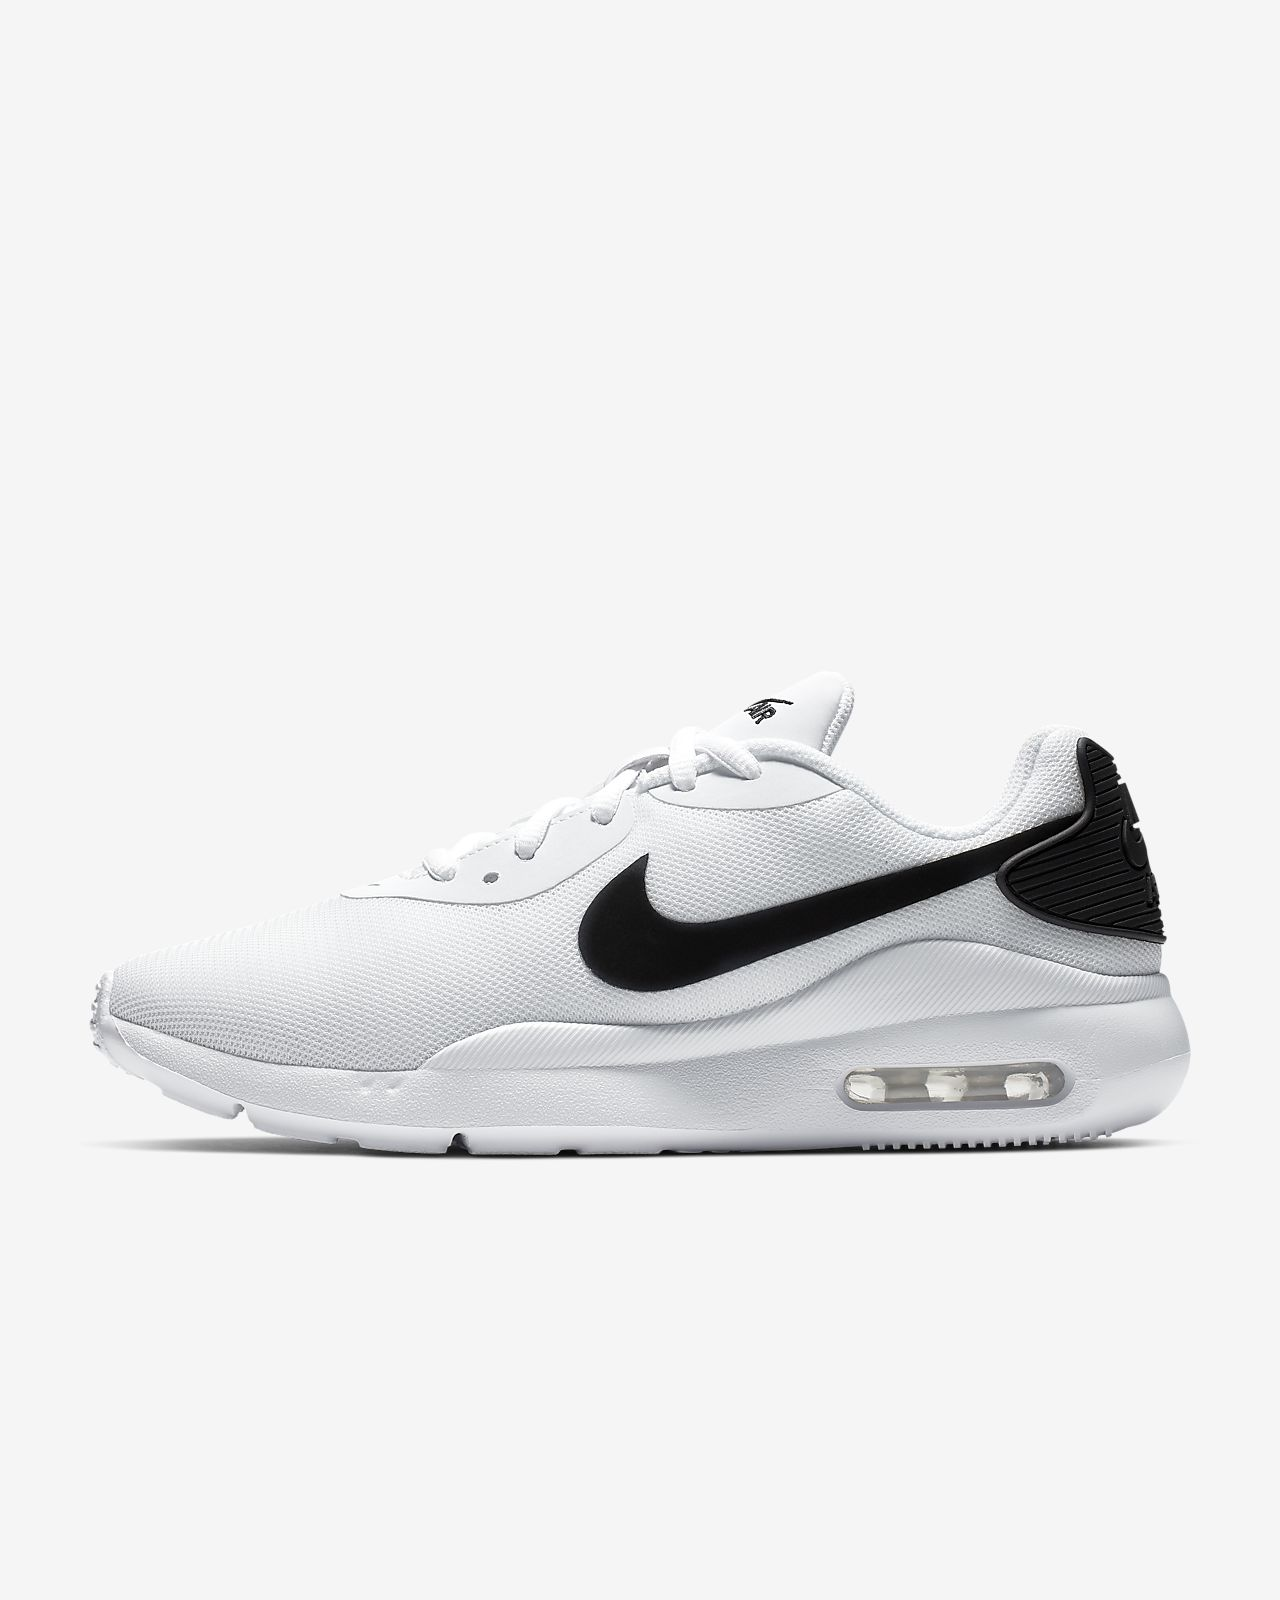 Nike Air Max Oketo Women's Shoe